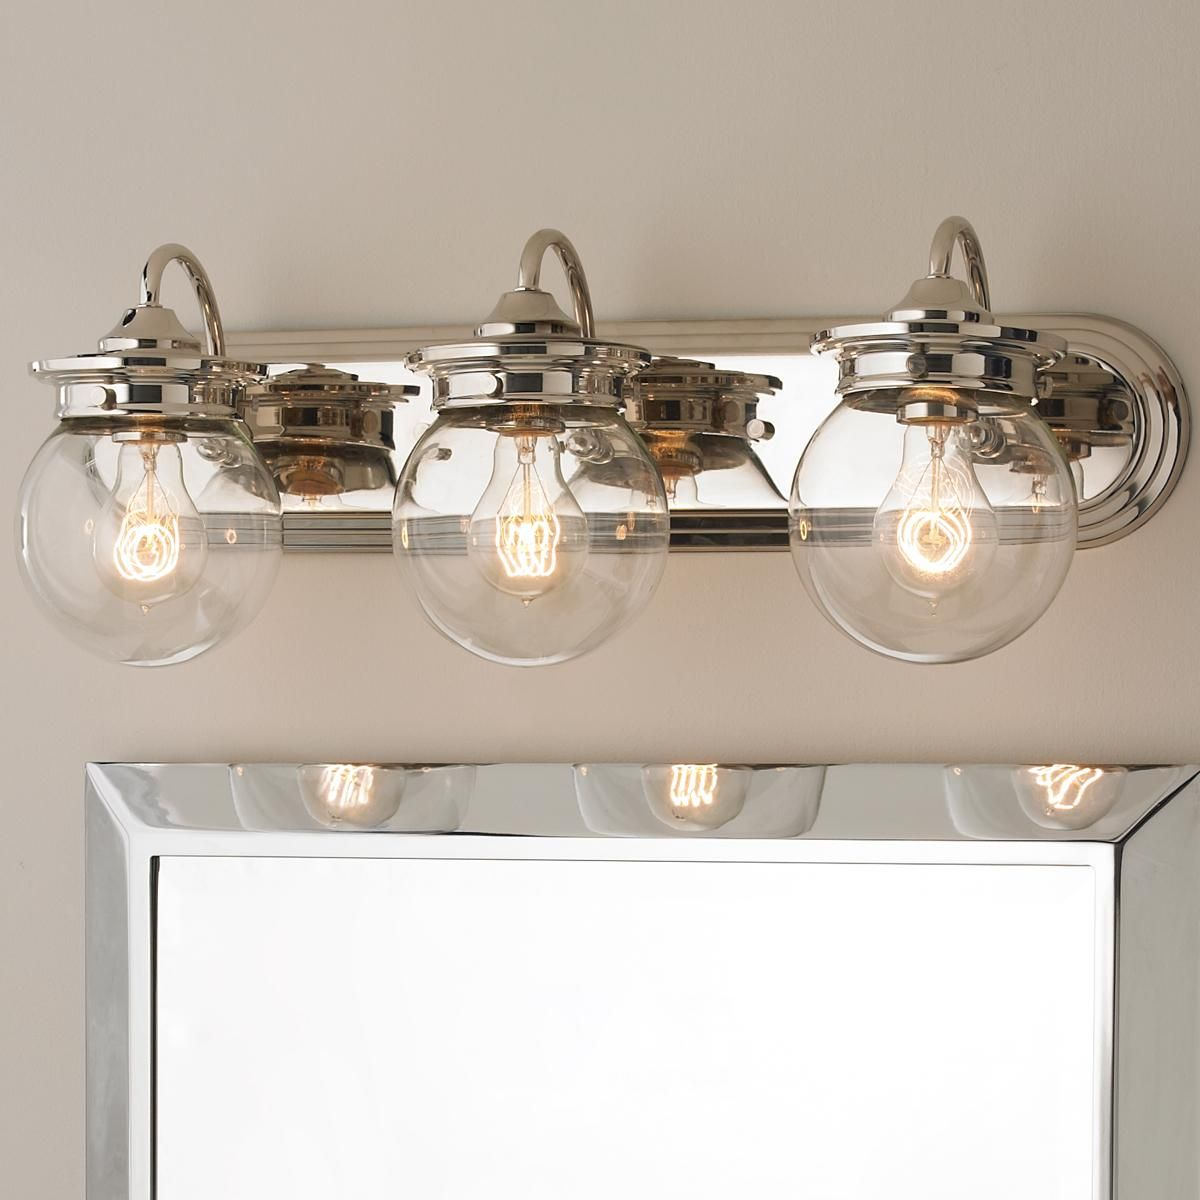 Bathroom Sconces Traditional traditional clear glass globe bath light - 3 light | bath light